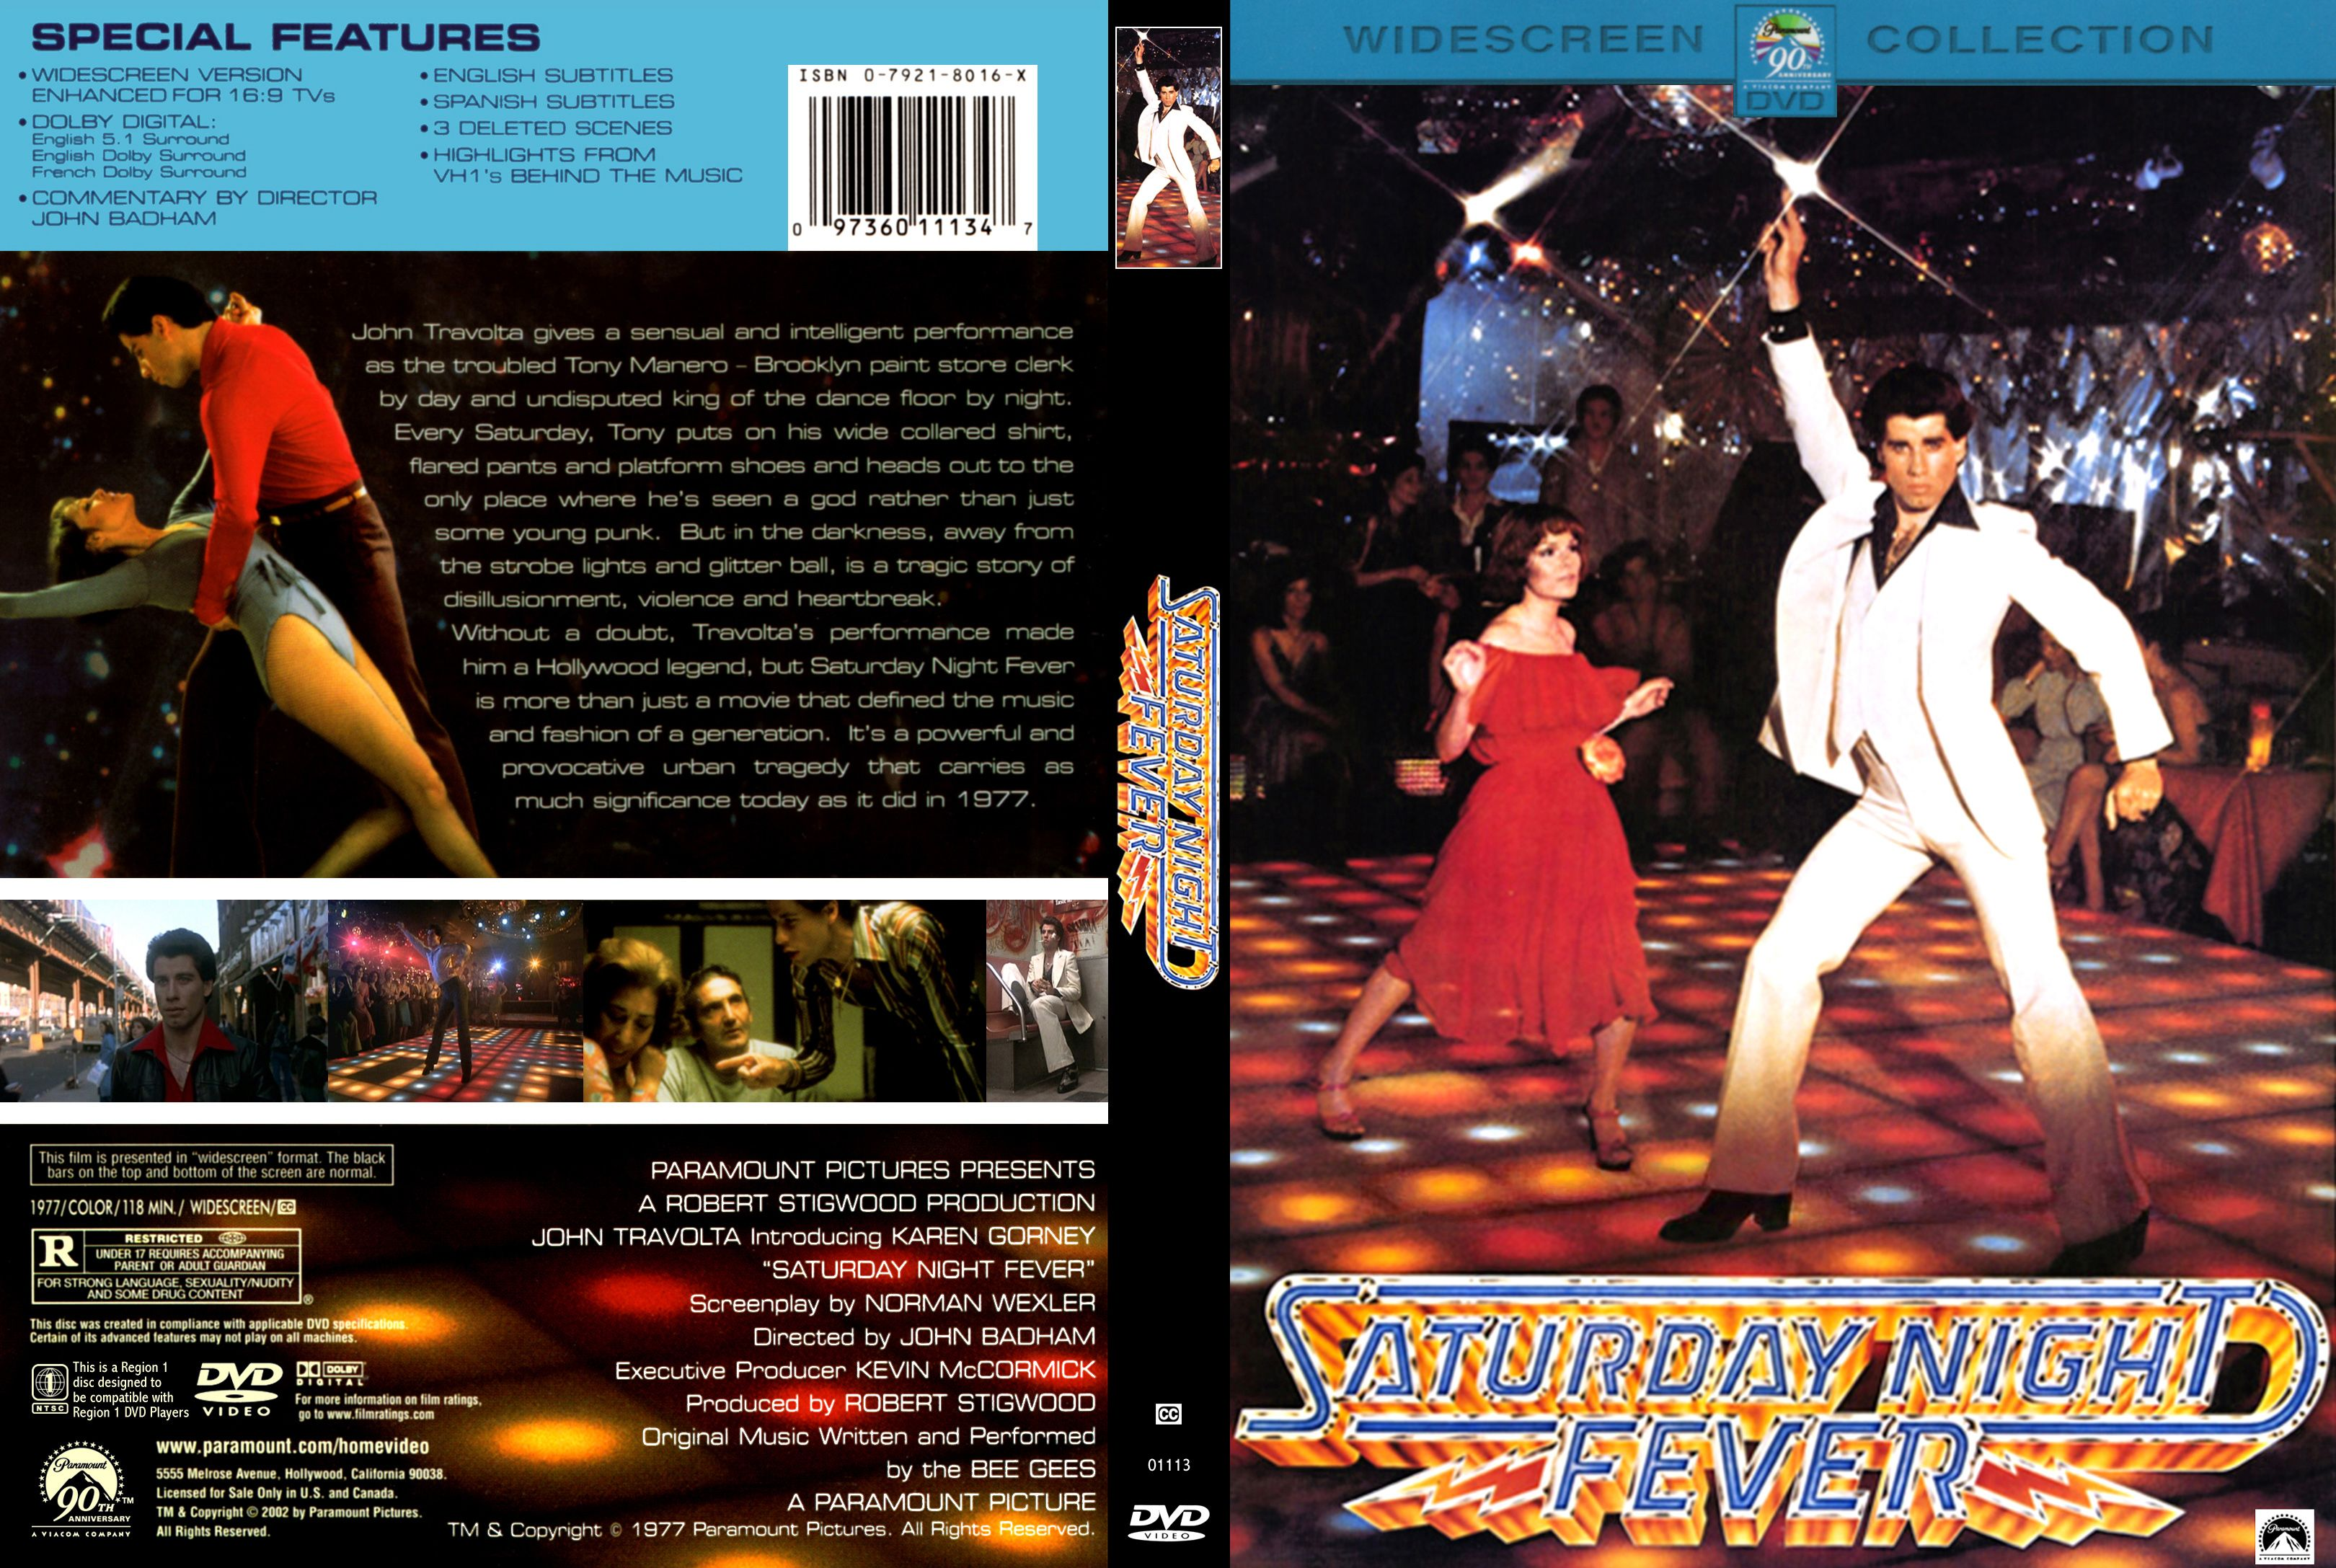 saturday night fever r1 english scan na na misc dvd dvd